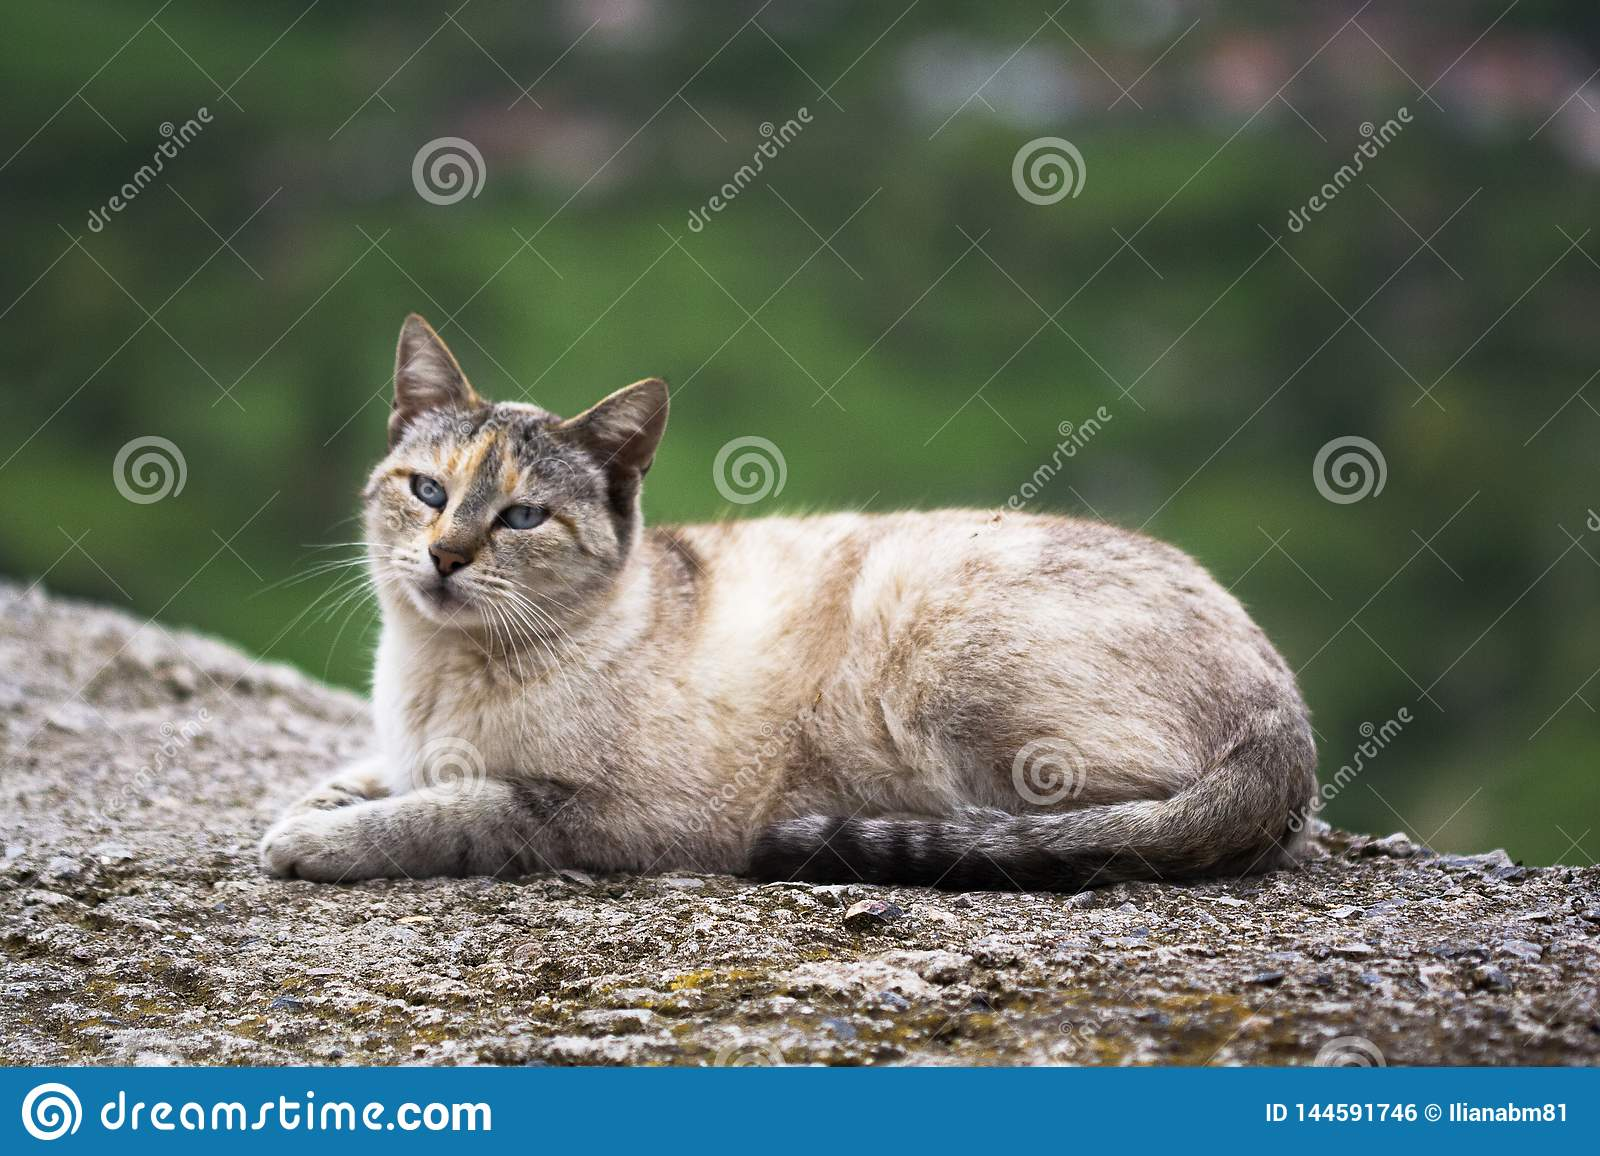 Cat resting on the road